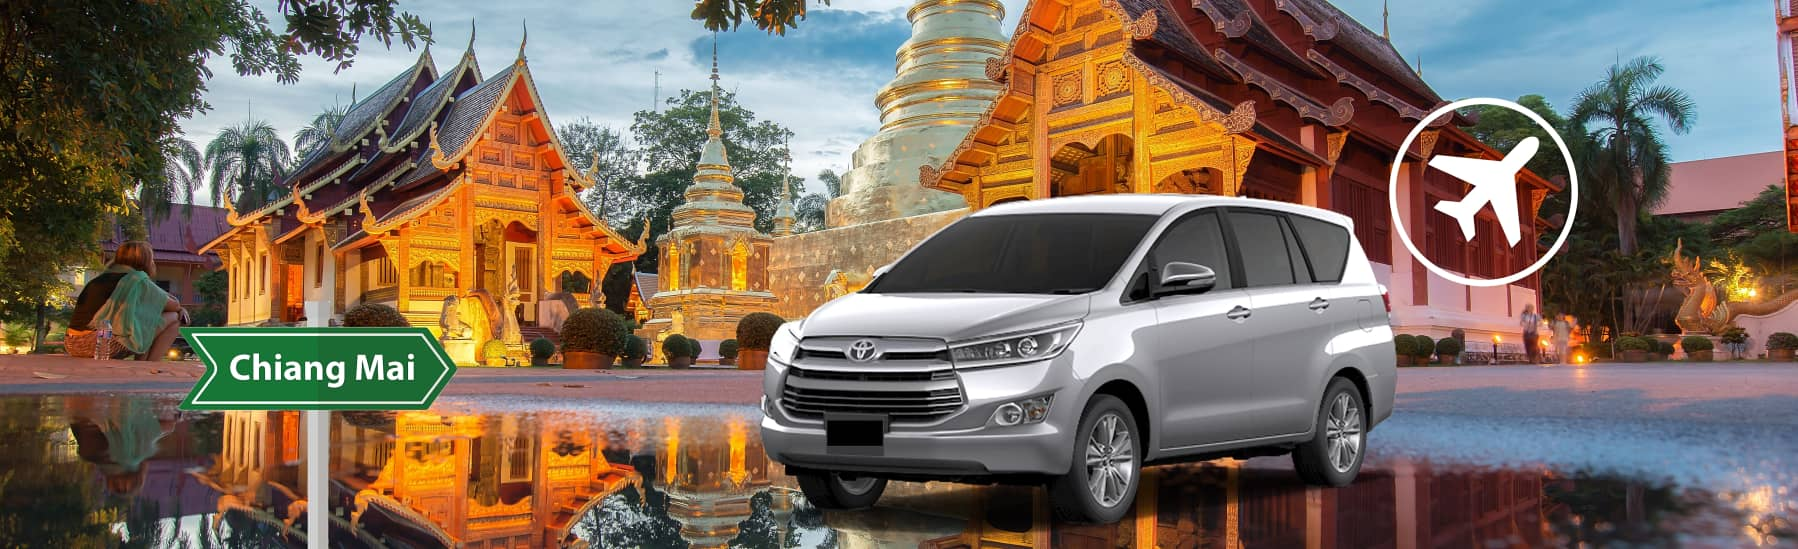 Chiang Mai Airport Private Car Transfer Service to Chiang Mai City Centre gallery